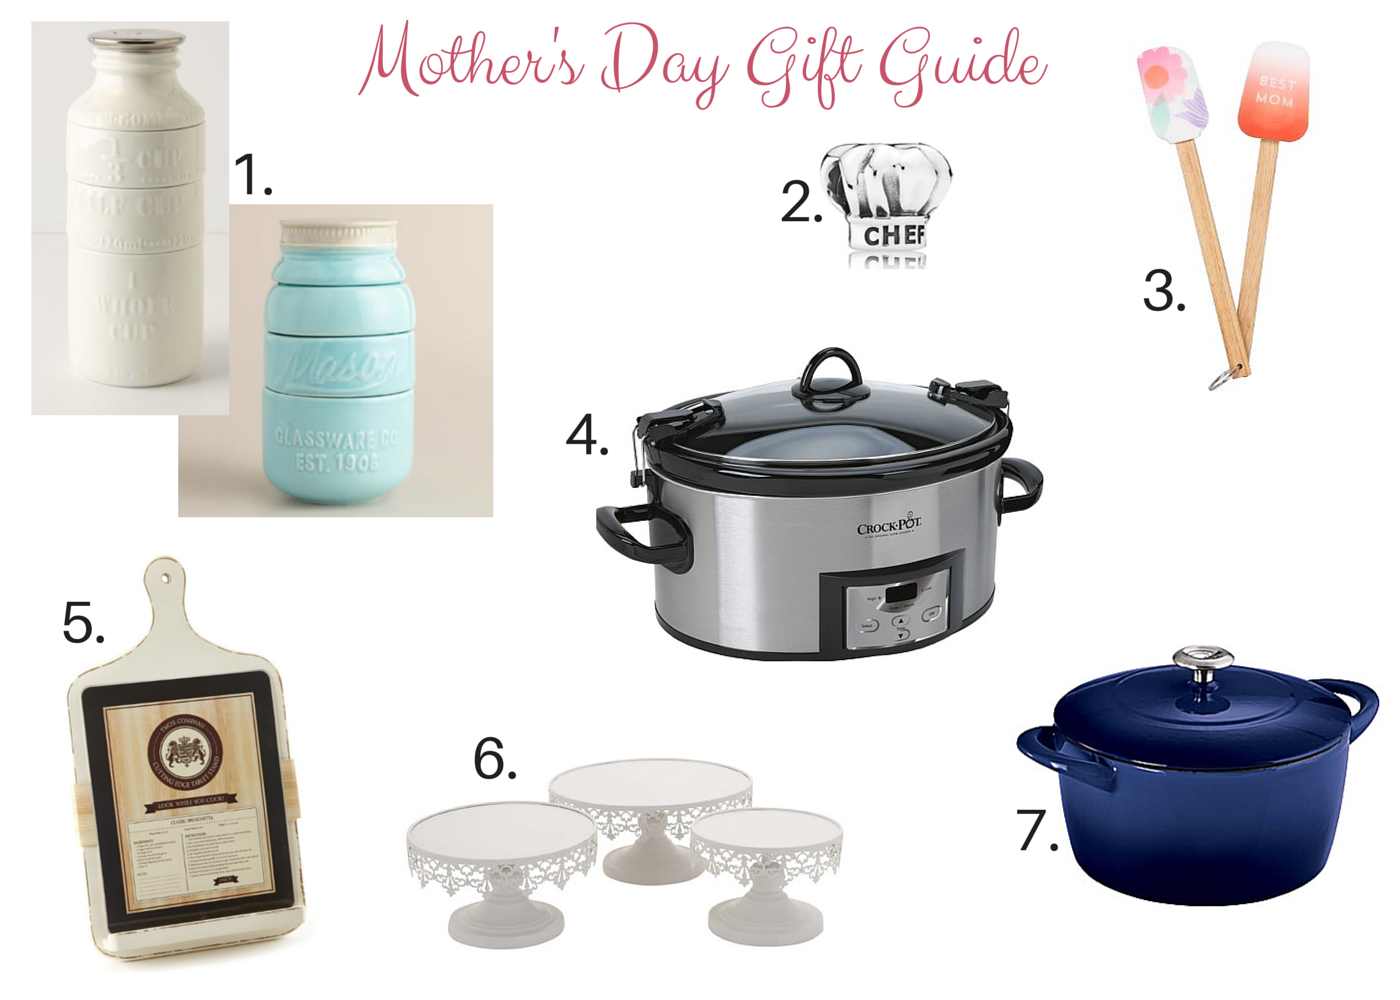 7 Mother's Day Gifts for a Mom Who Loves to Cook